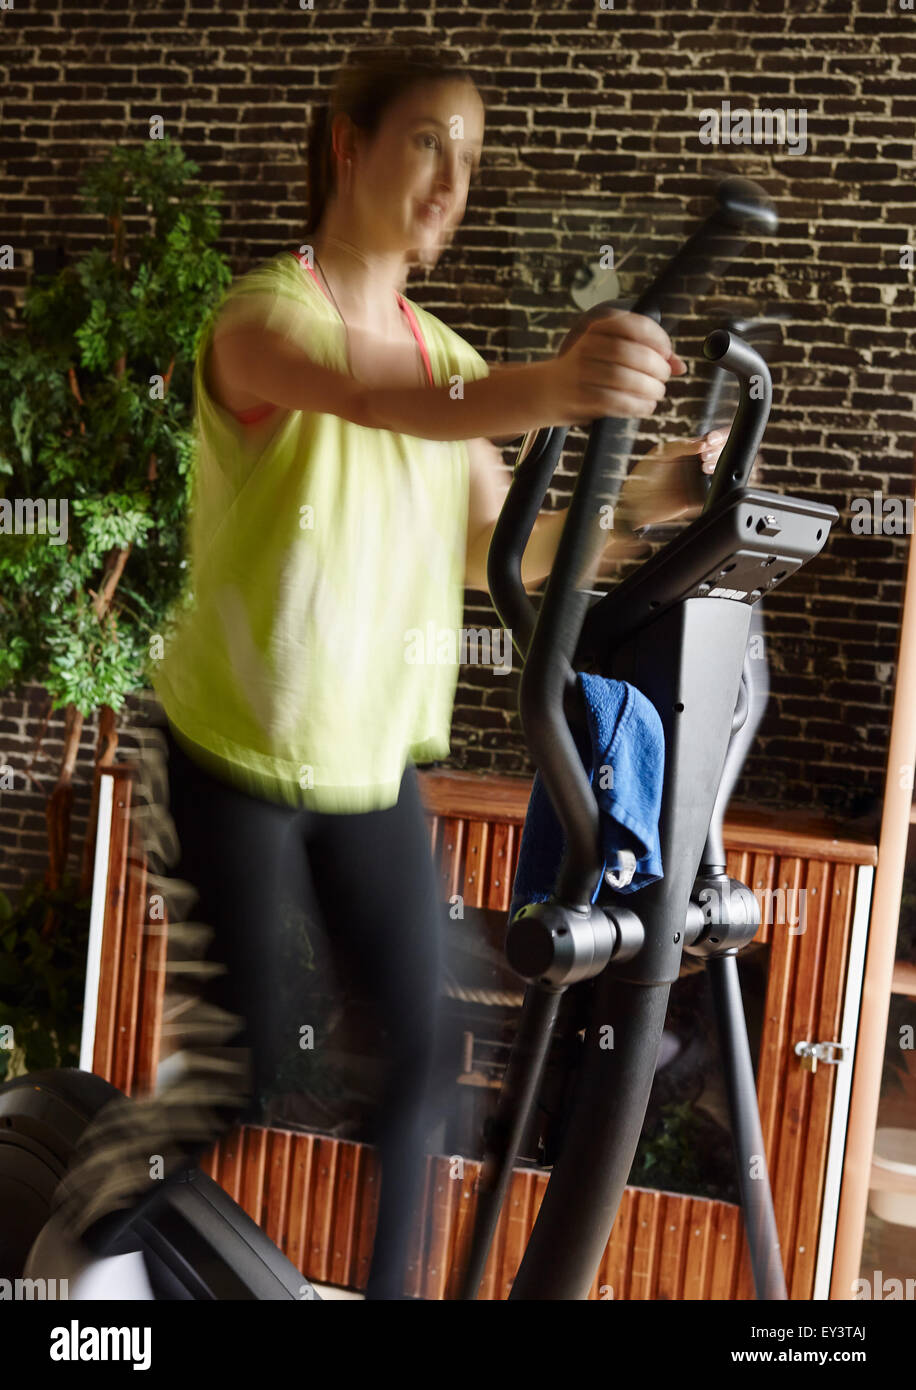 Young woman takes care of his health and she use elliptical trainer, intentional motion blur and narrow field of - Stock Image